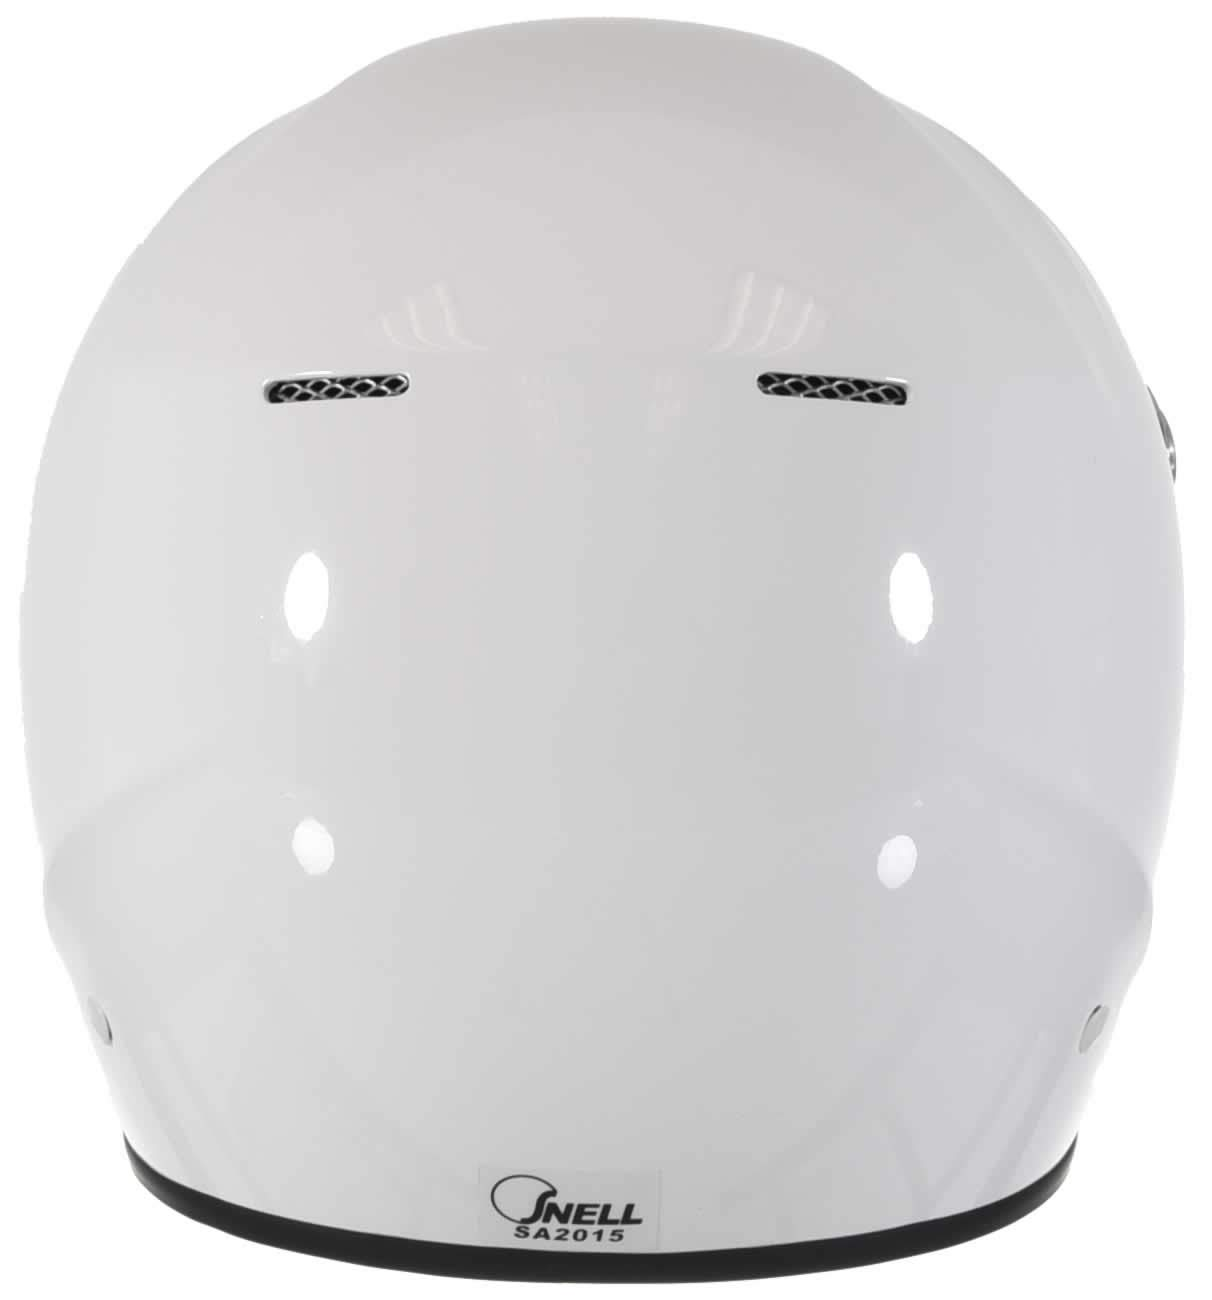 Conquer Snell SA2015 Aerodynamic Vented Full Face Auto Racing Helmet by Conquer (Image #5)